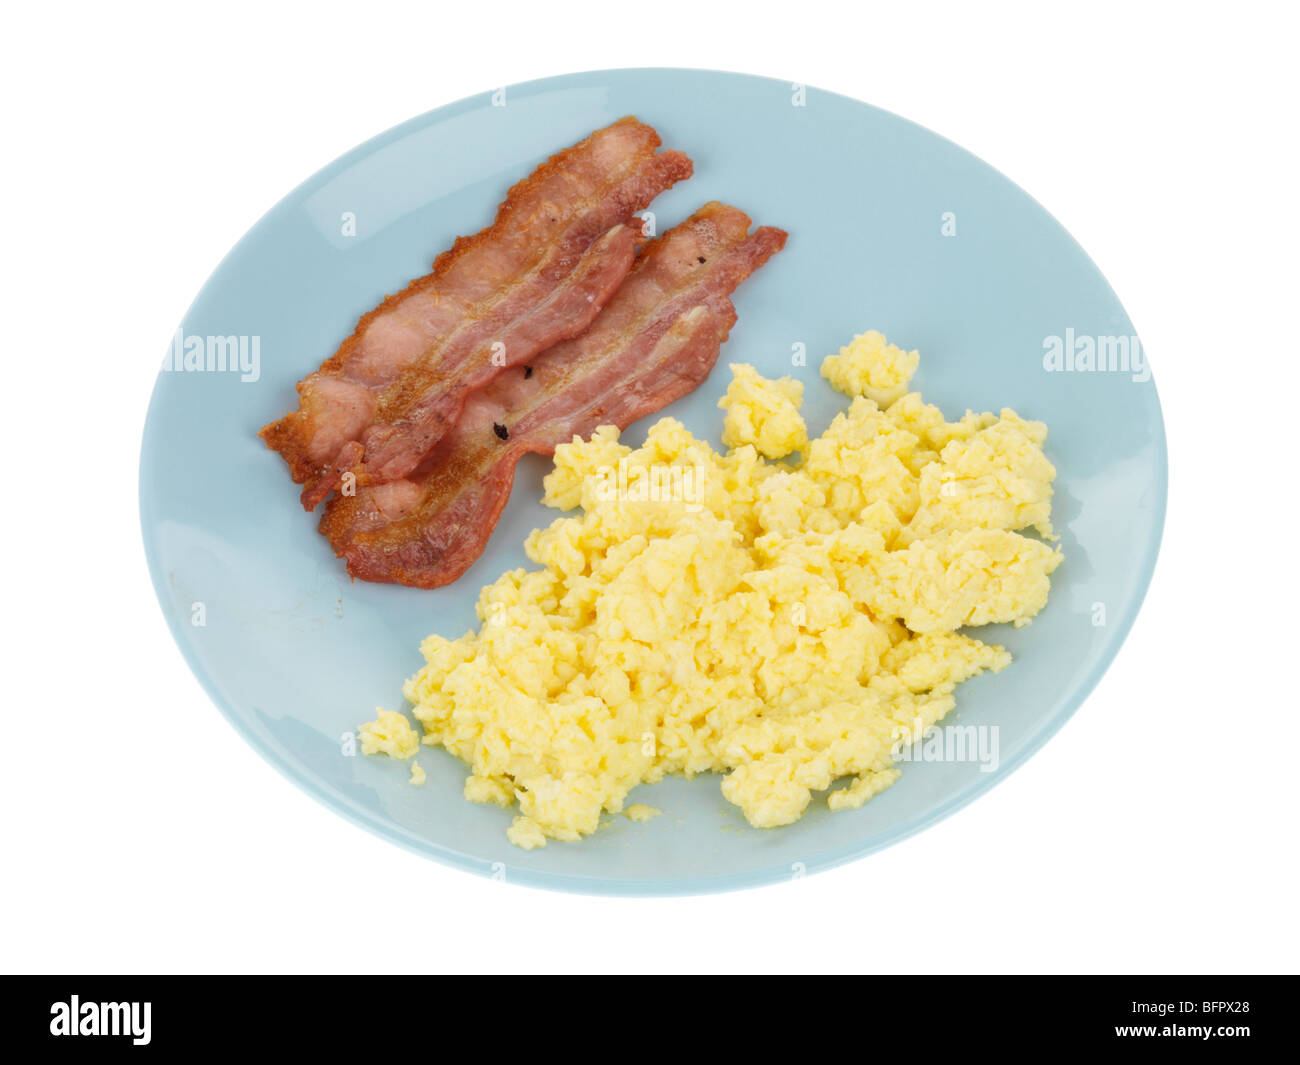 Scrambled Egg with Lean Streaky Bacon - Stock Image